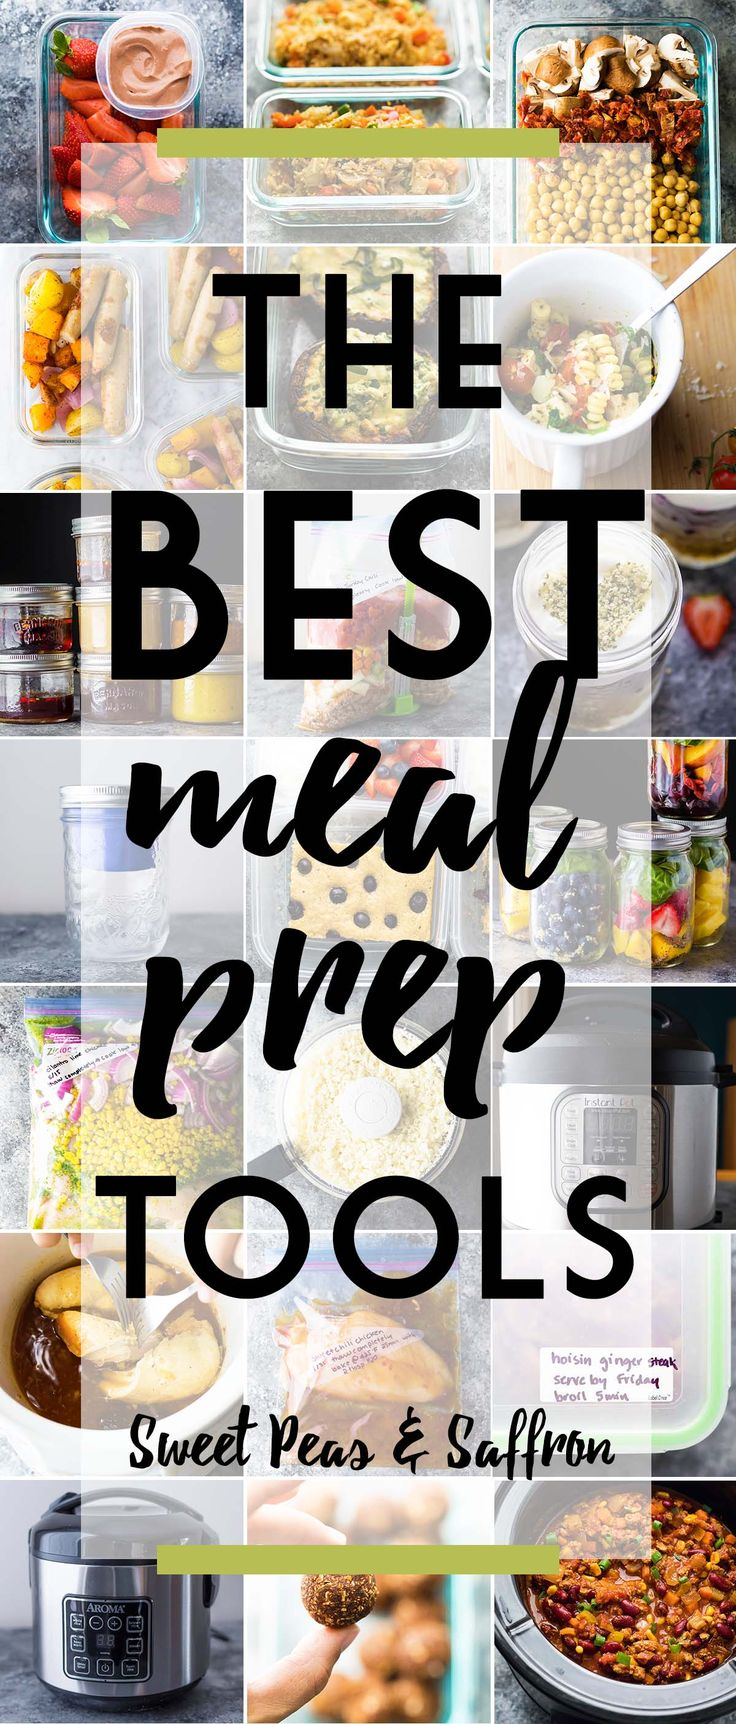 The BEST meal prep containers, equipment and tools that will help you prep healthy, portable lunches, freezer-friendly dinners, and an organized fridge.